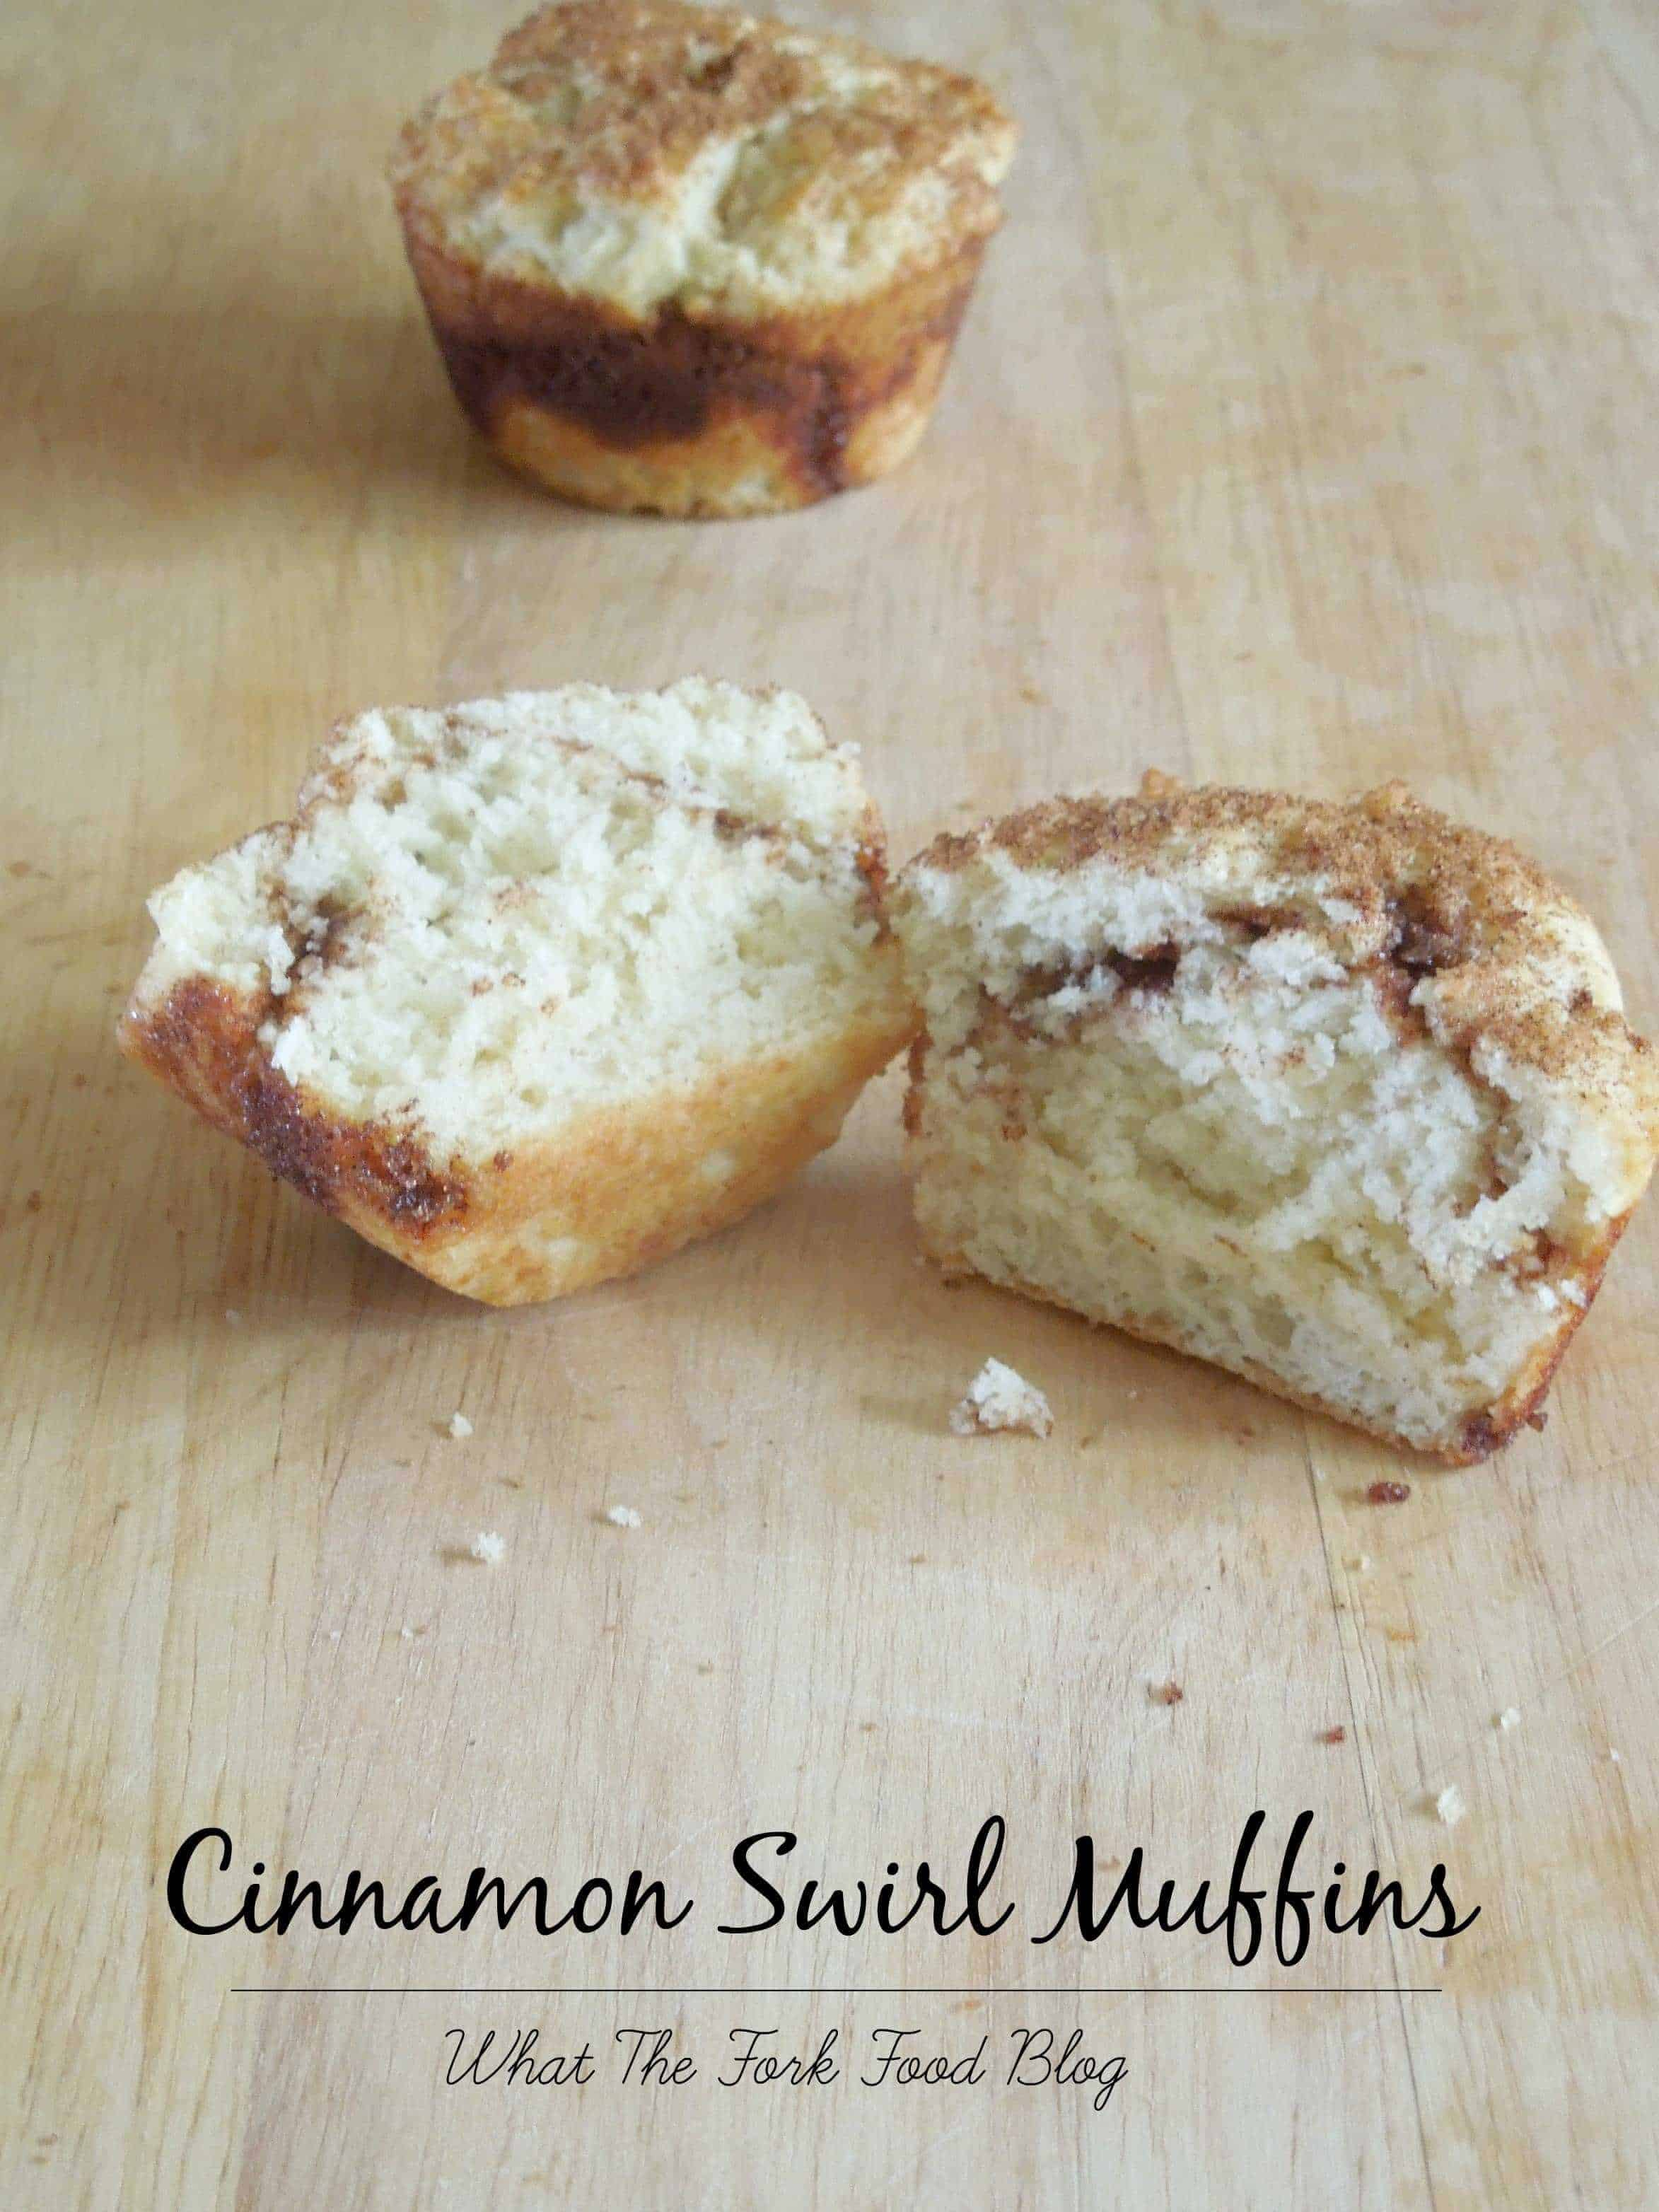 Cinnamon Swirl Muffins from What The Fork Food Blog